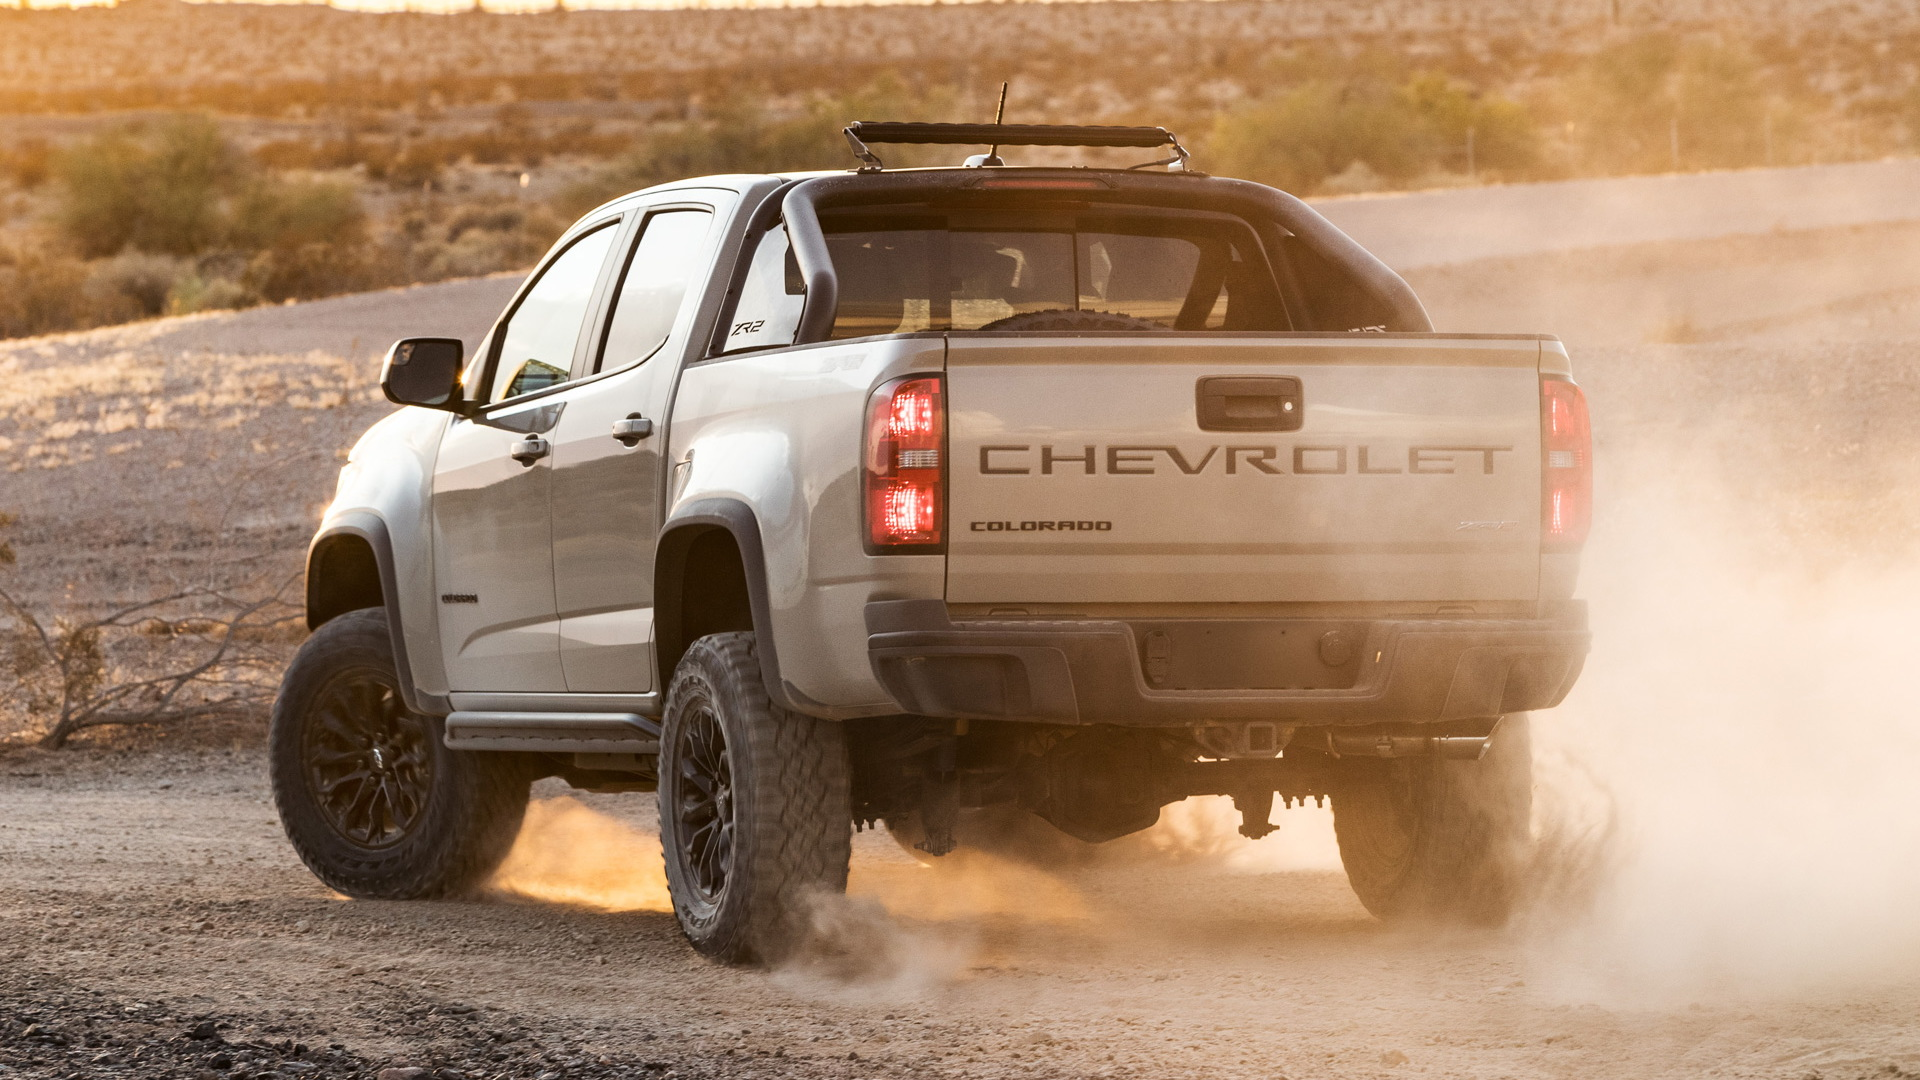 Chevy previews updated 2021 Colorado ahead of SEMA show